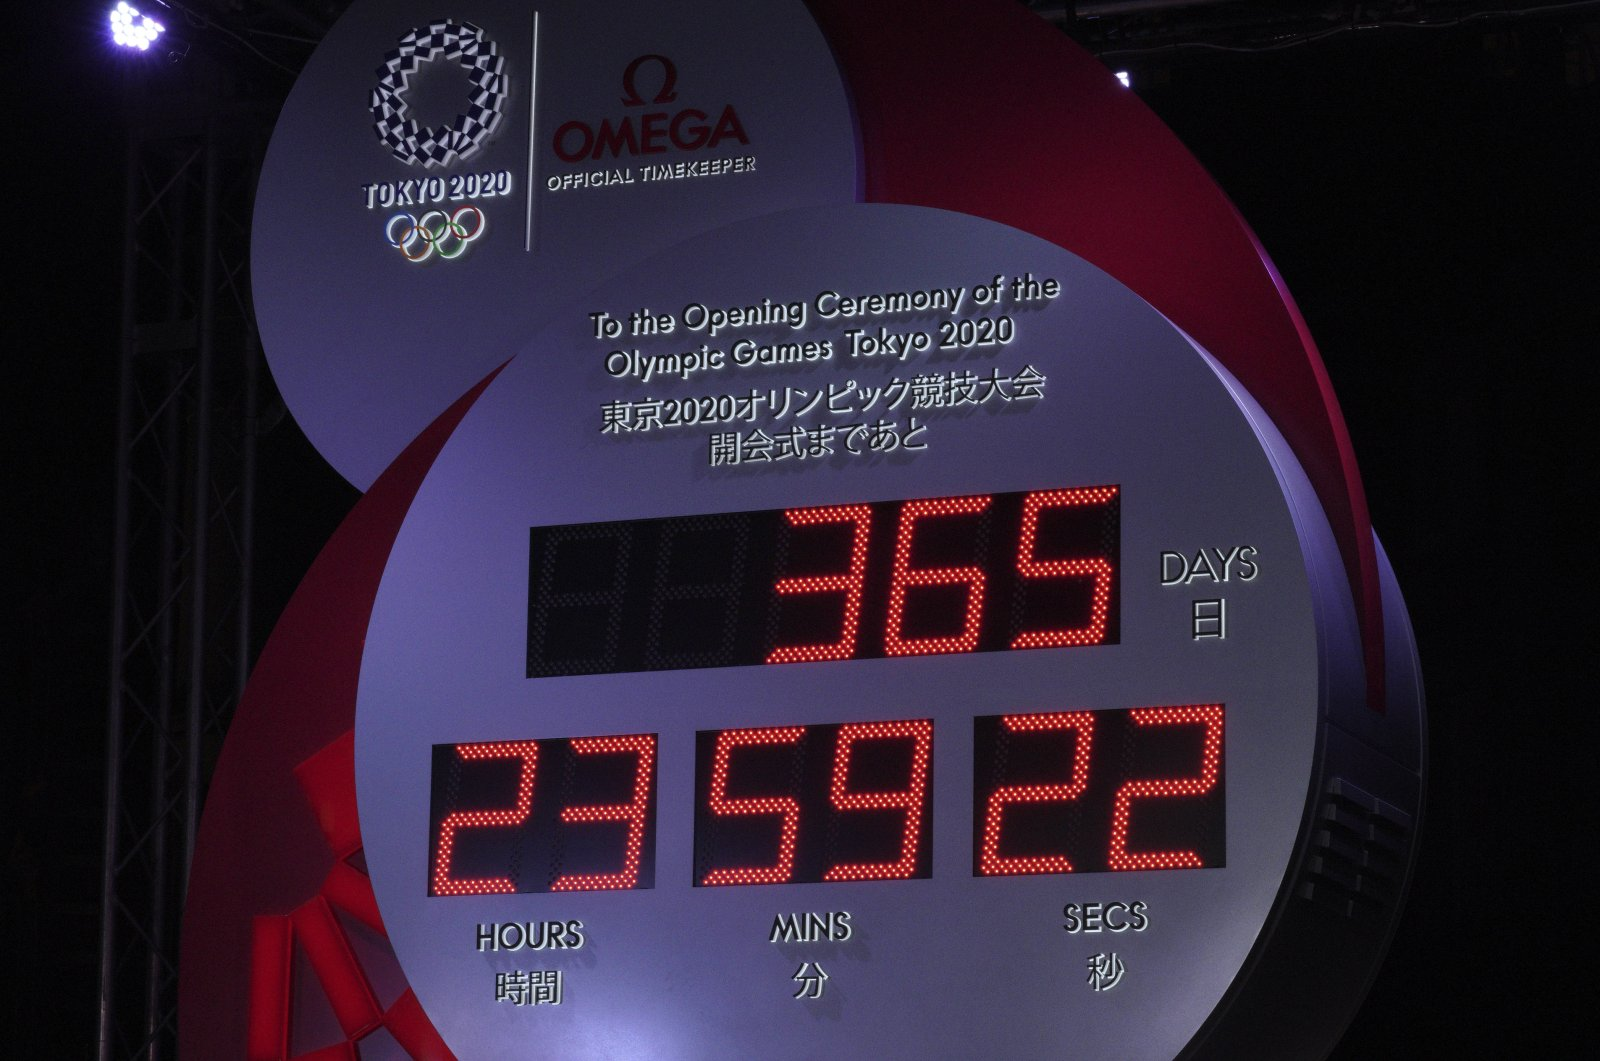 Unveiled countdown clock is shown during the Tokyo 2020 Countdown Clock presentation in Tokyo, Japan, July 24, 2019. (AP Photo)